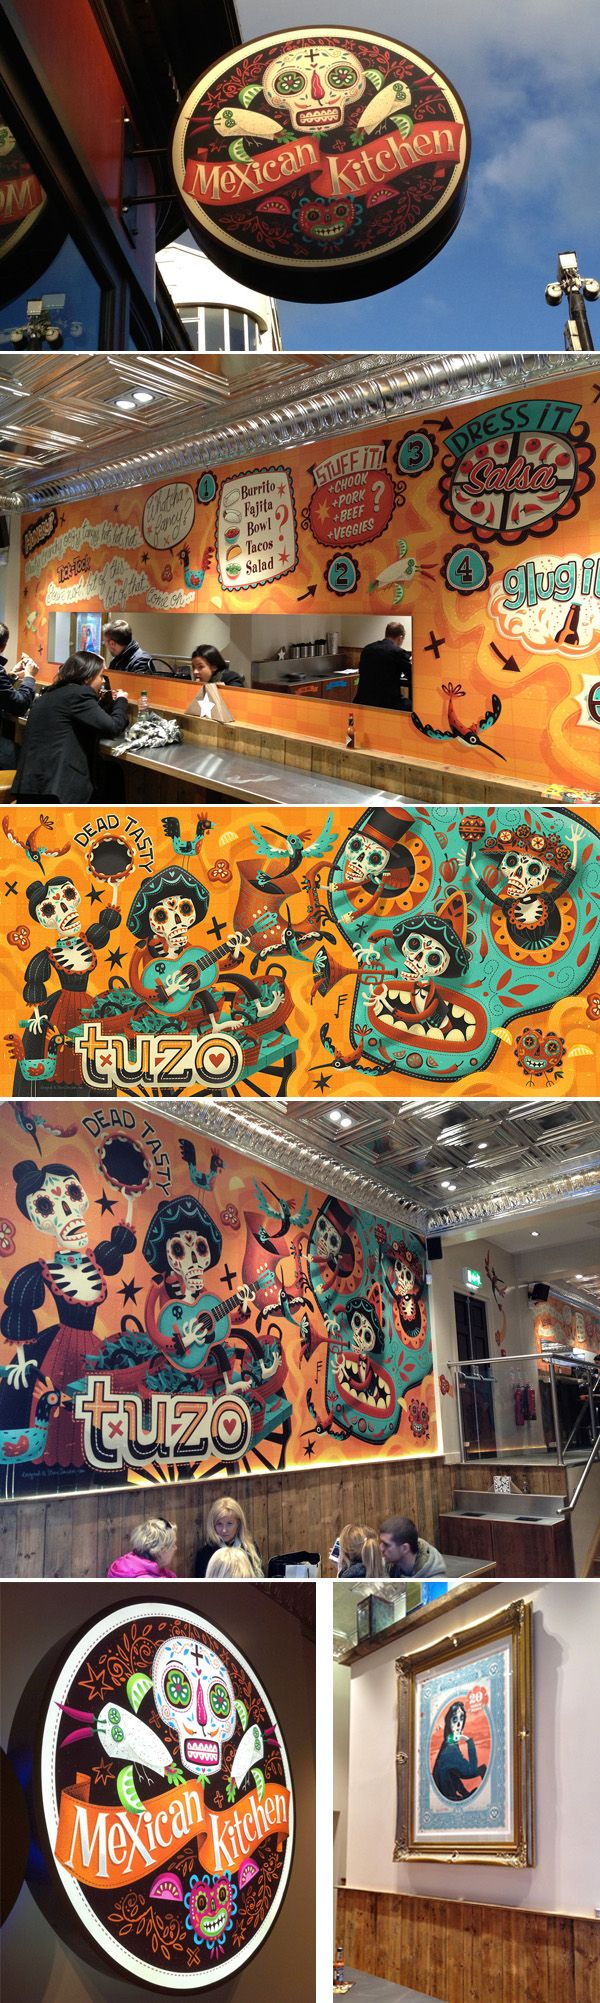 Tuzo - Mexican Kitchen Illustrations